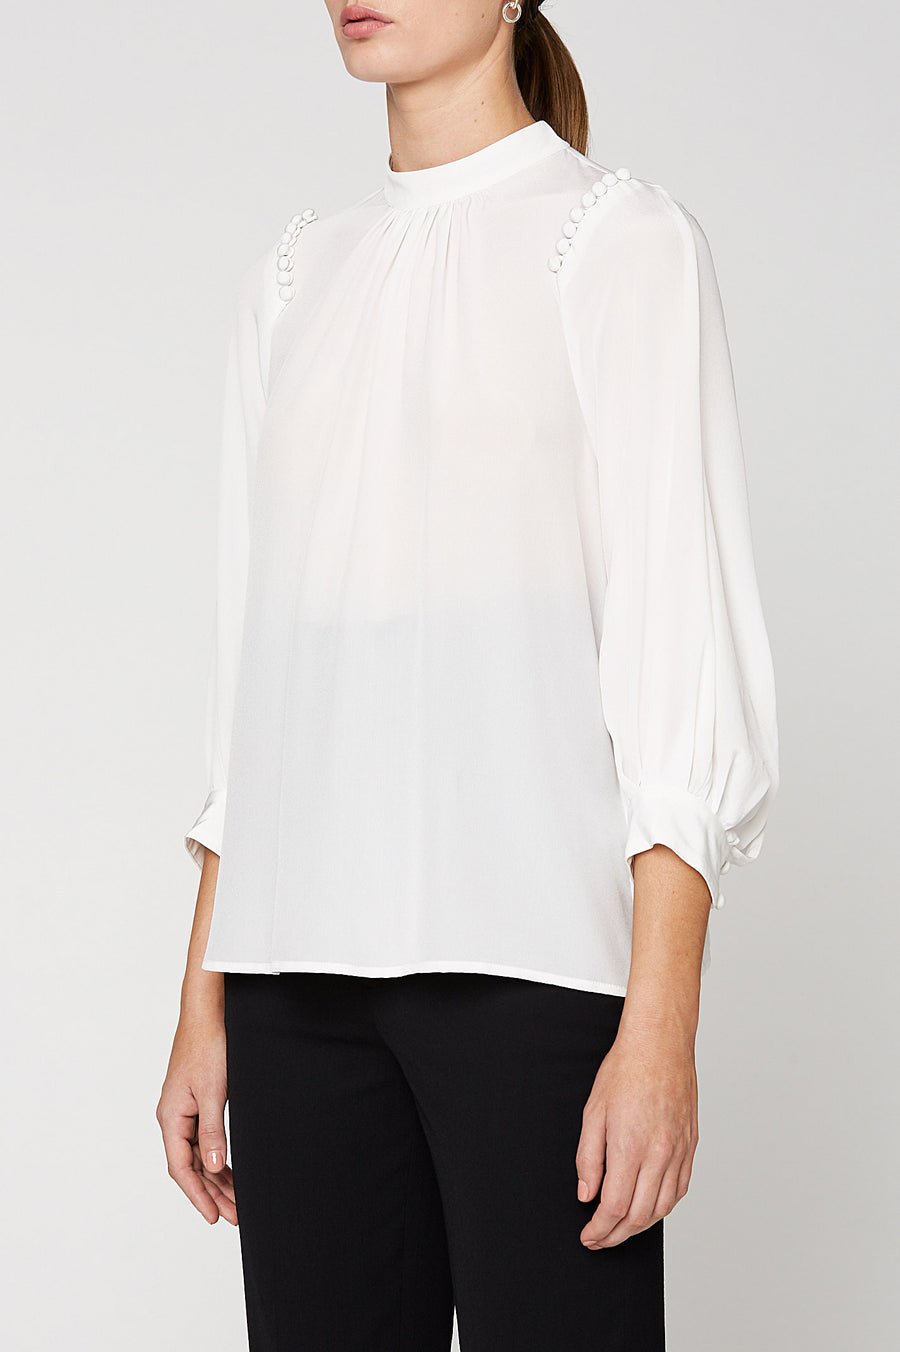 CDC BUTTON SHLDR BLOUSE